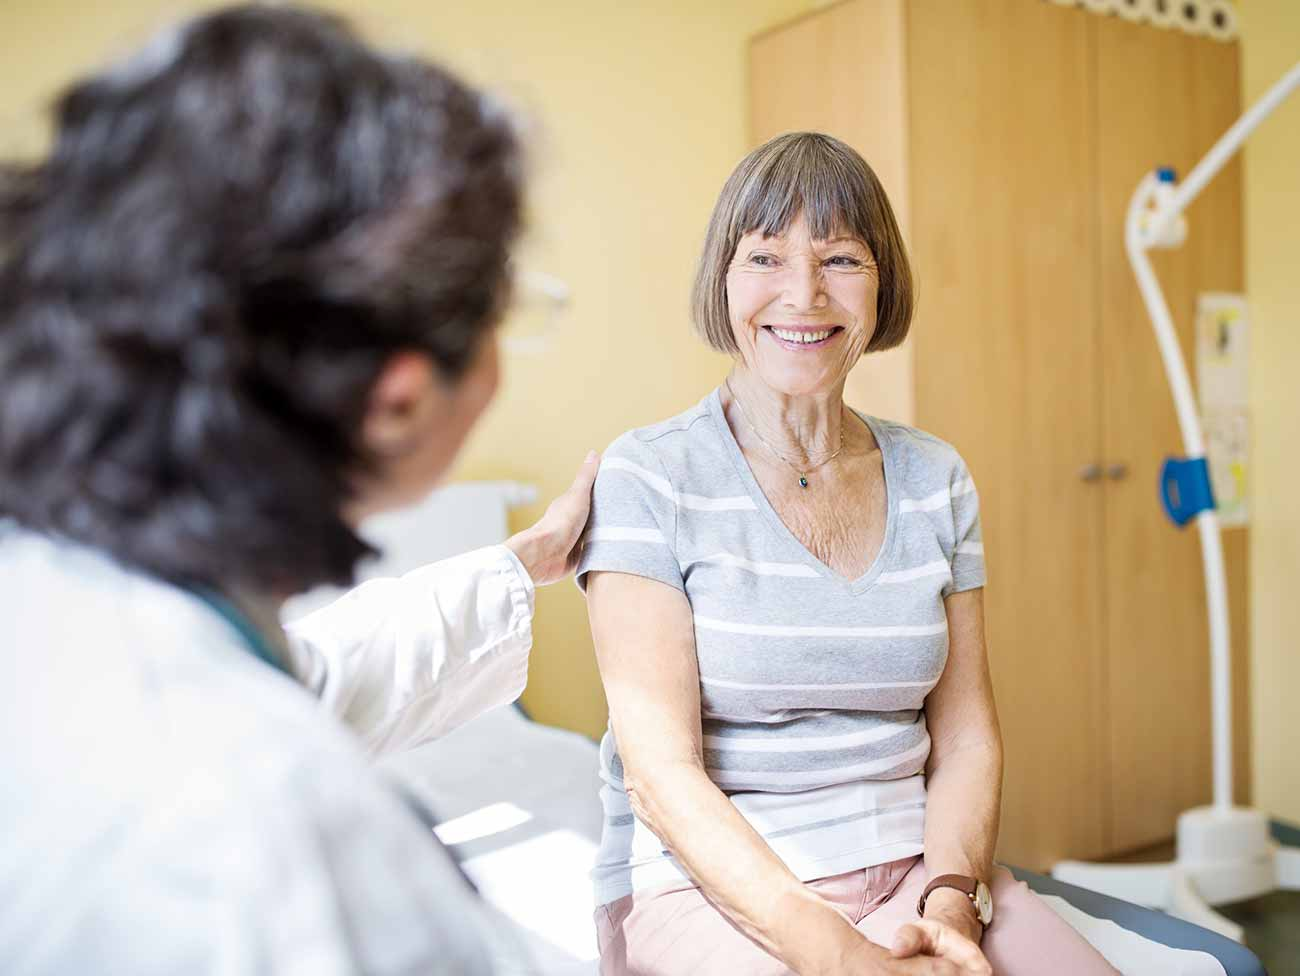 A senior woman smiling senior at her physician during an exam.